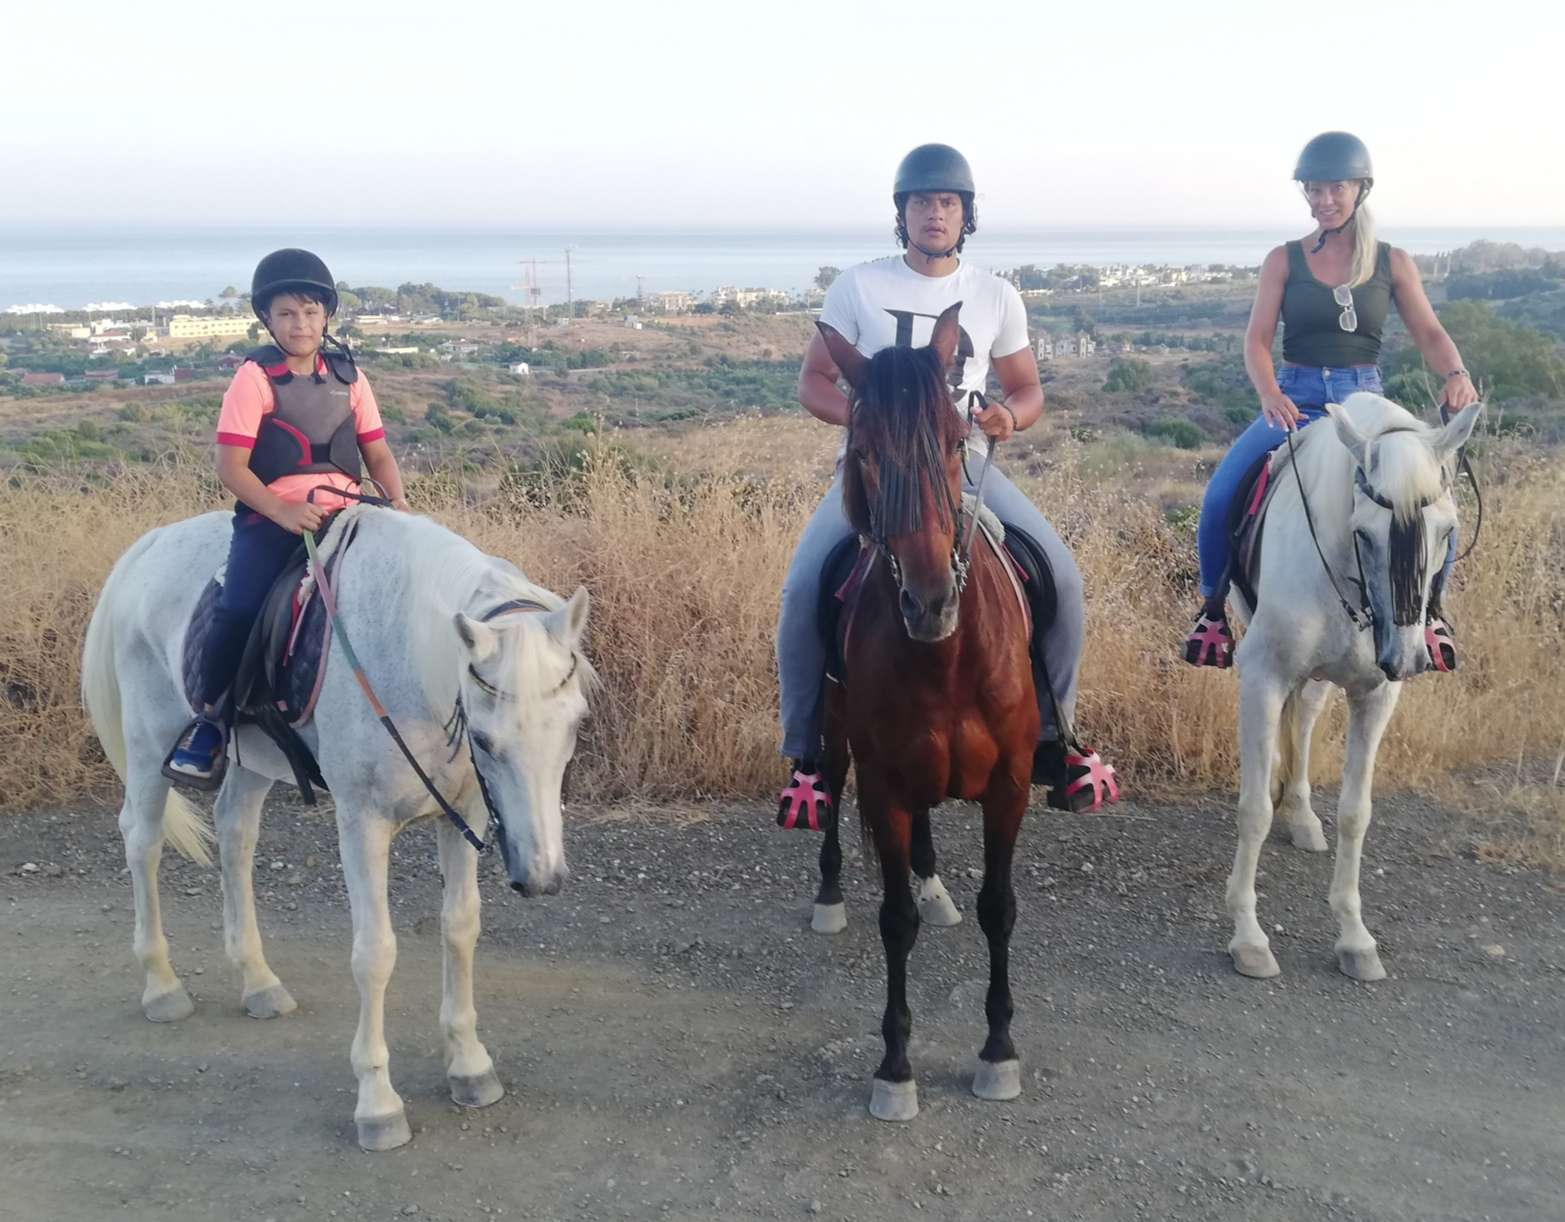 Ranch Siesta Los Rubios beginners horse riding in Estepona Saddle Up Experience